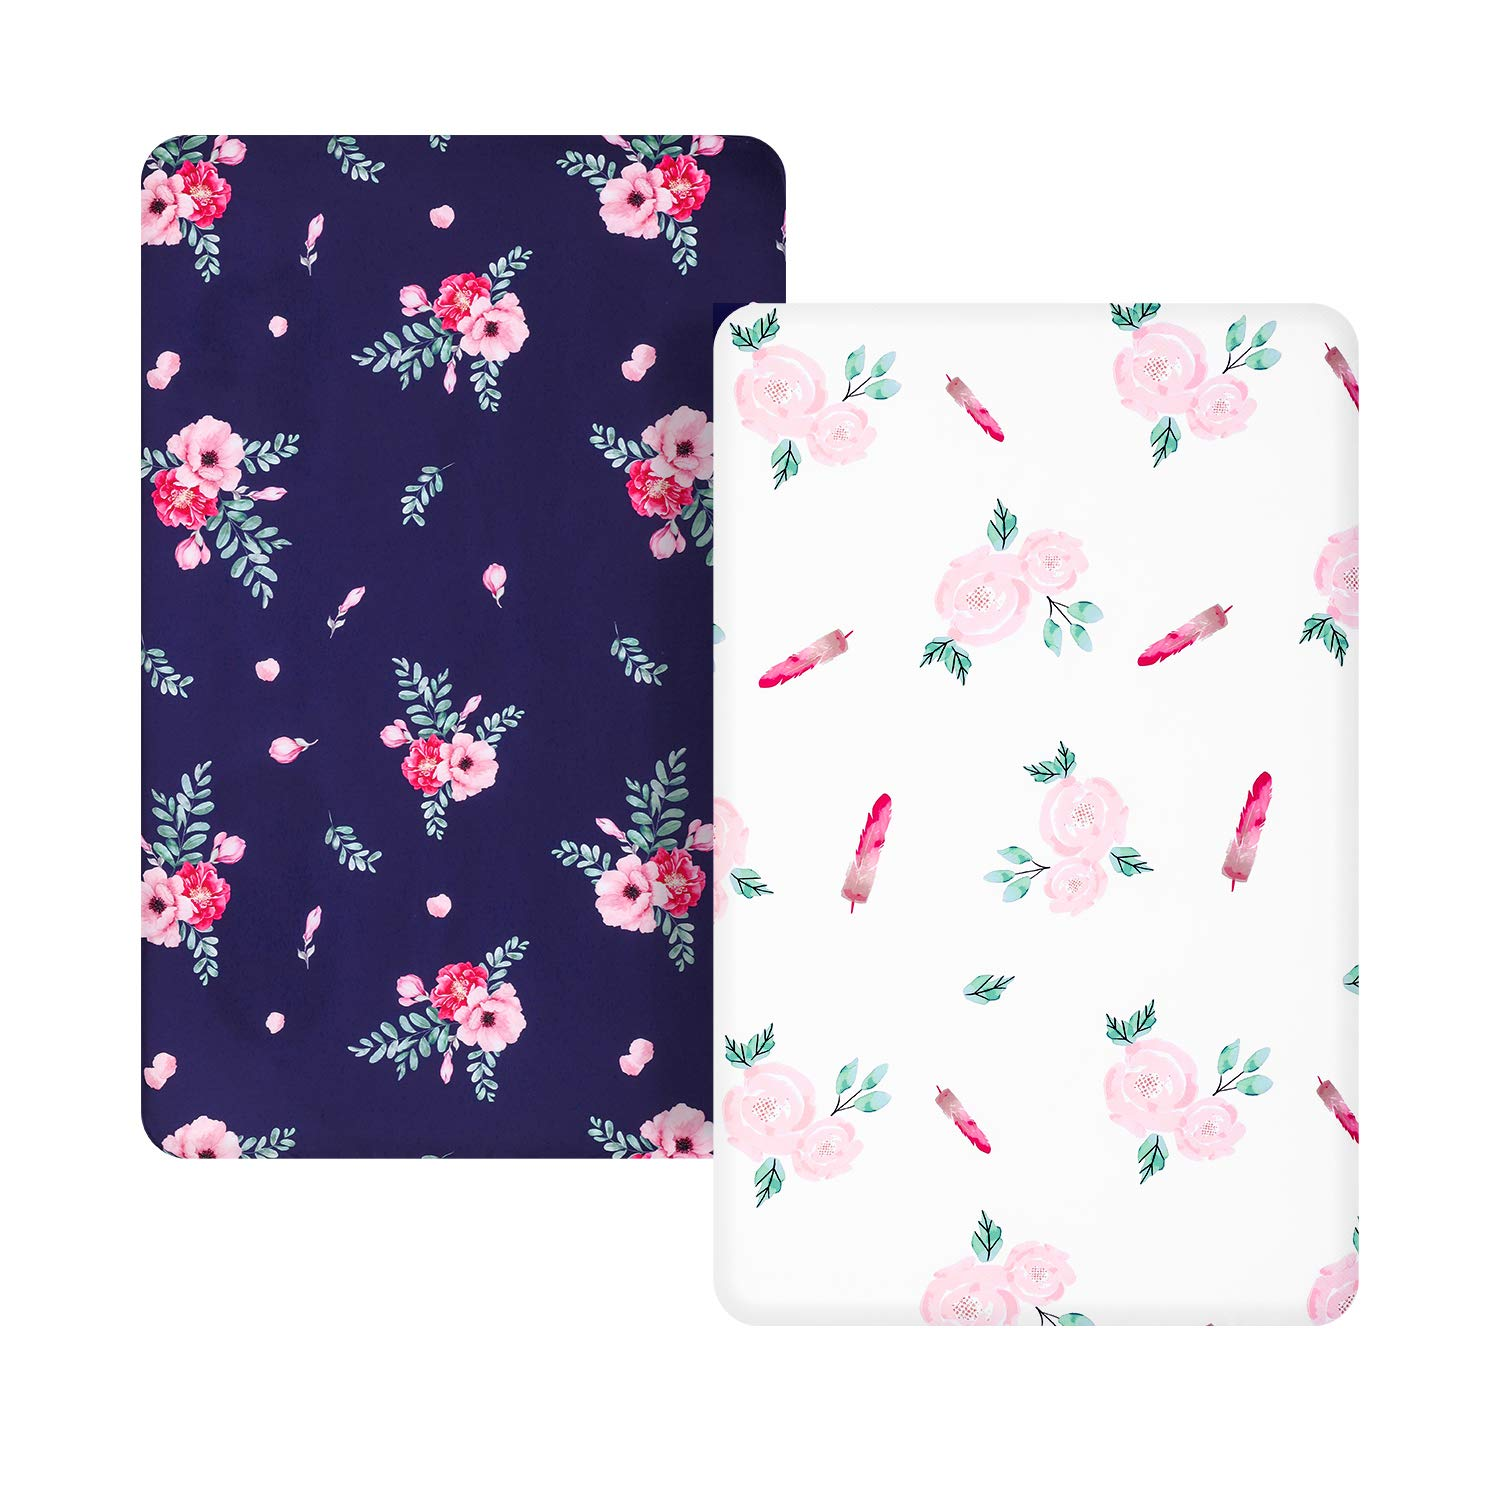 TILLYOU Microfiber Floral Pack N Play Sheets, Mini Portable Crib Sheets Set Fitted for Girls, Silky Soft Breathable Printed Playard Playpen Sheets, Navy & White Rose